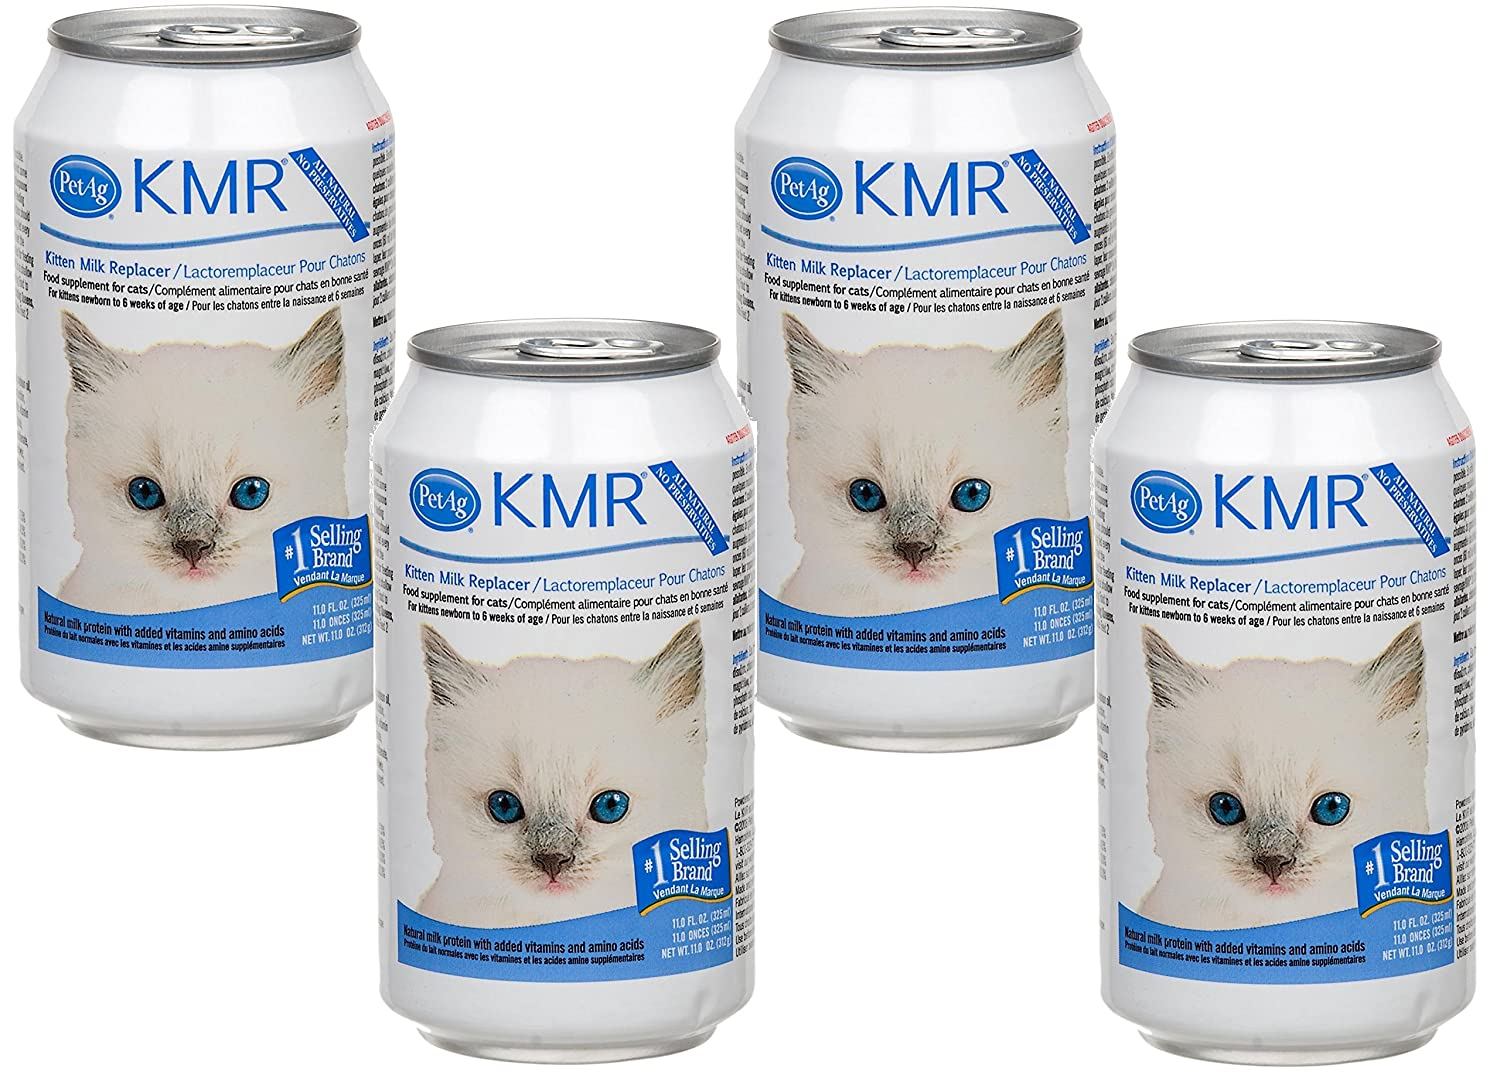 (4 Pack) KMR Liquid Replacer For Kittens and Cats, 11 Ounce Cans